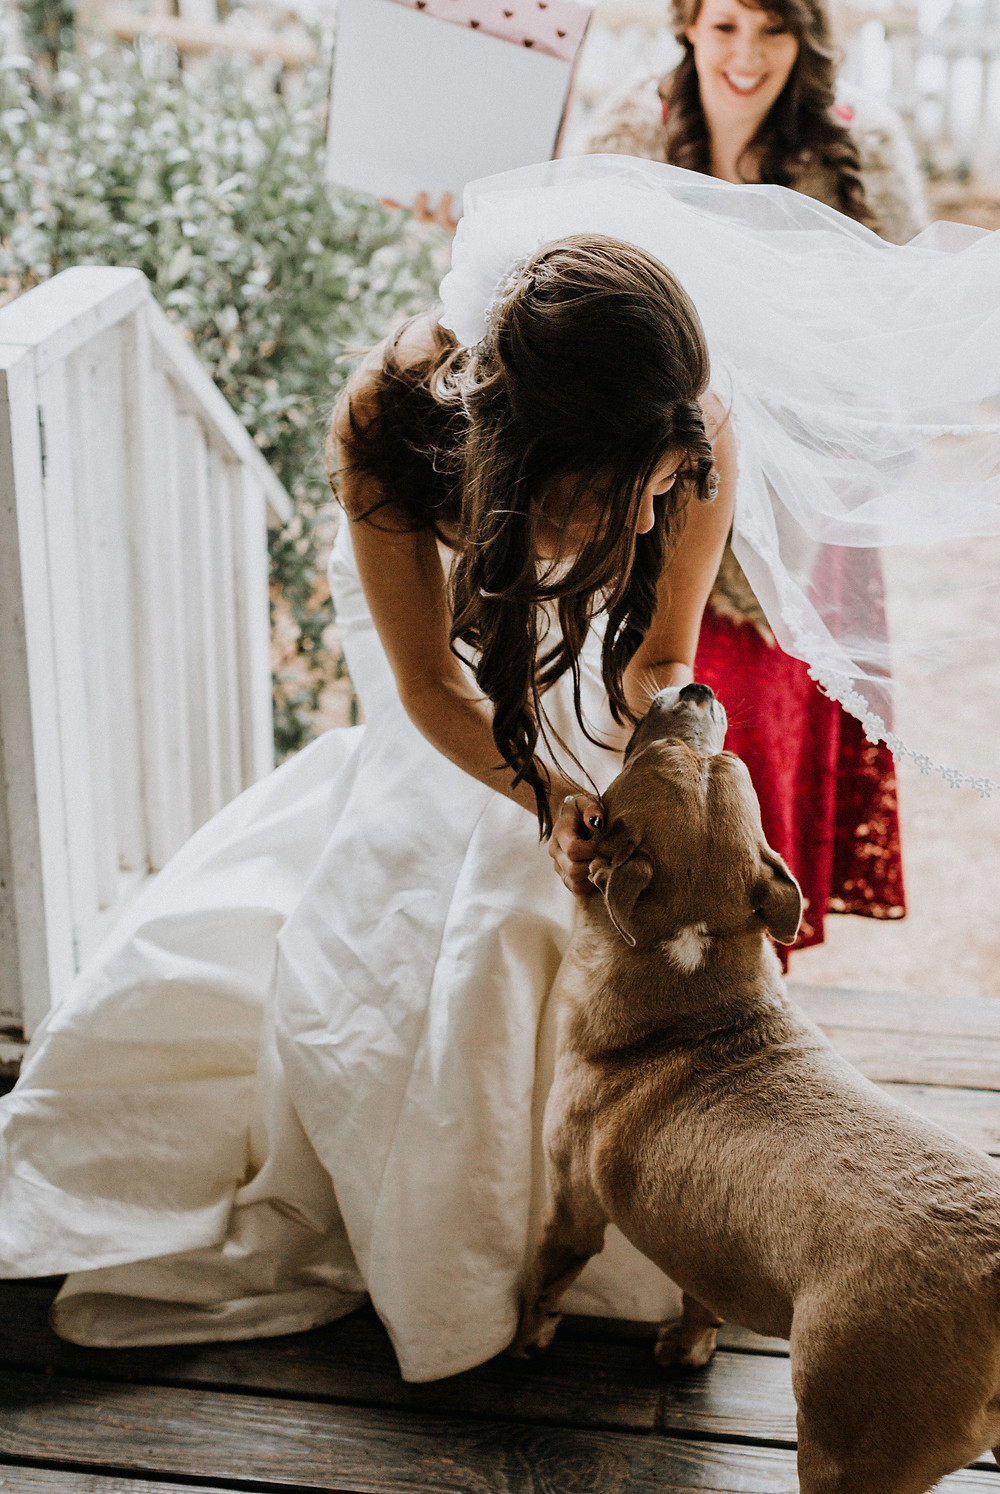 Dogs on wedding day